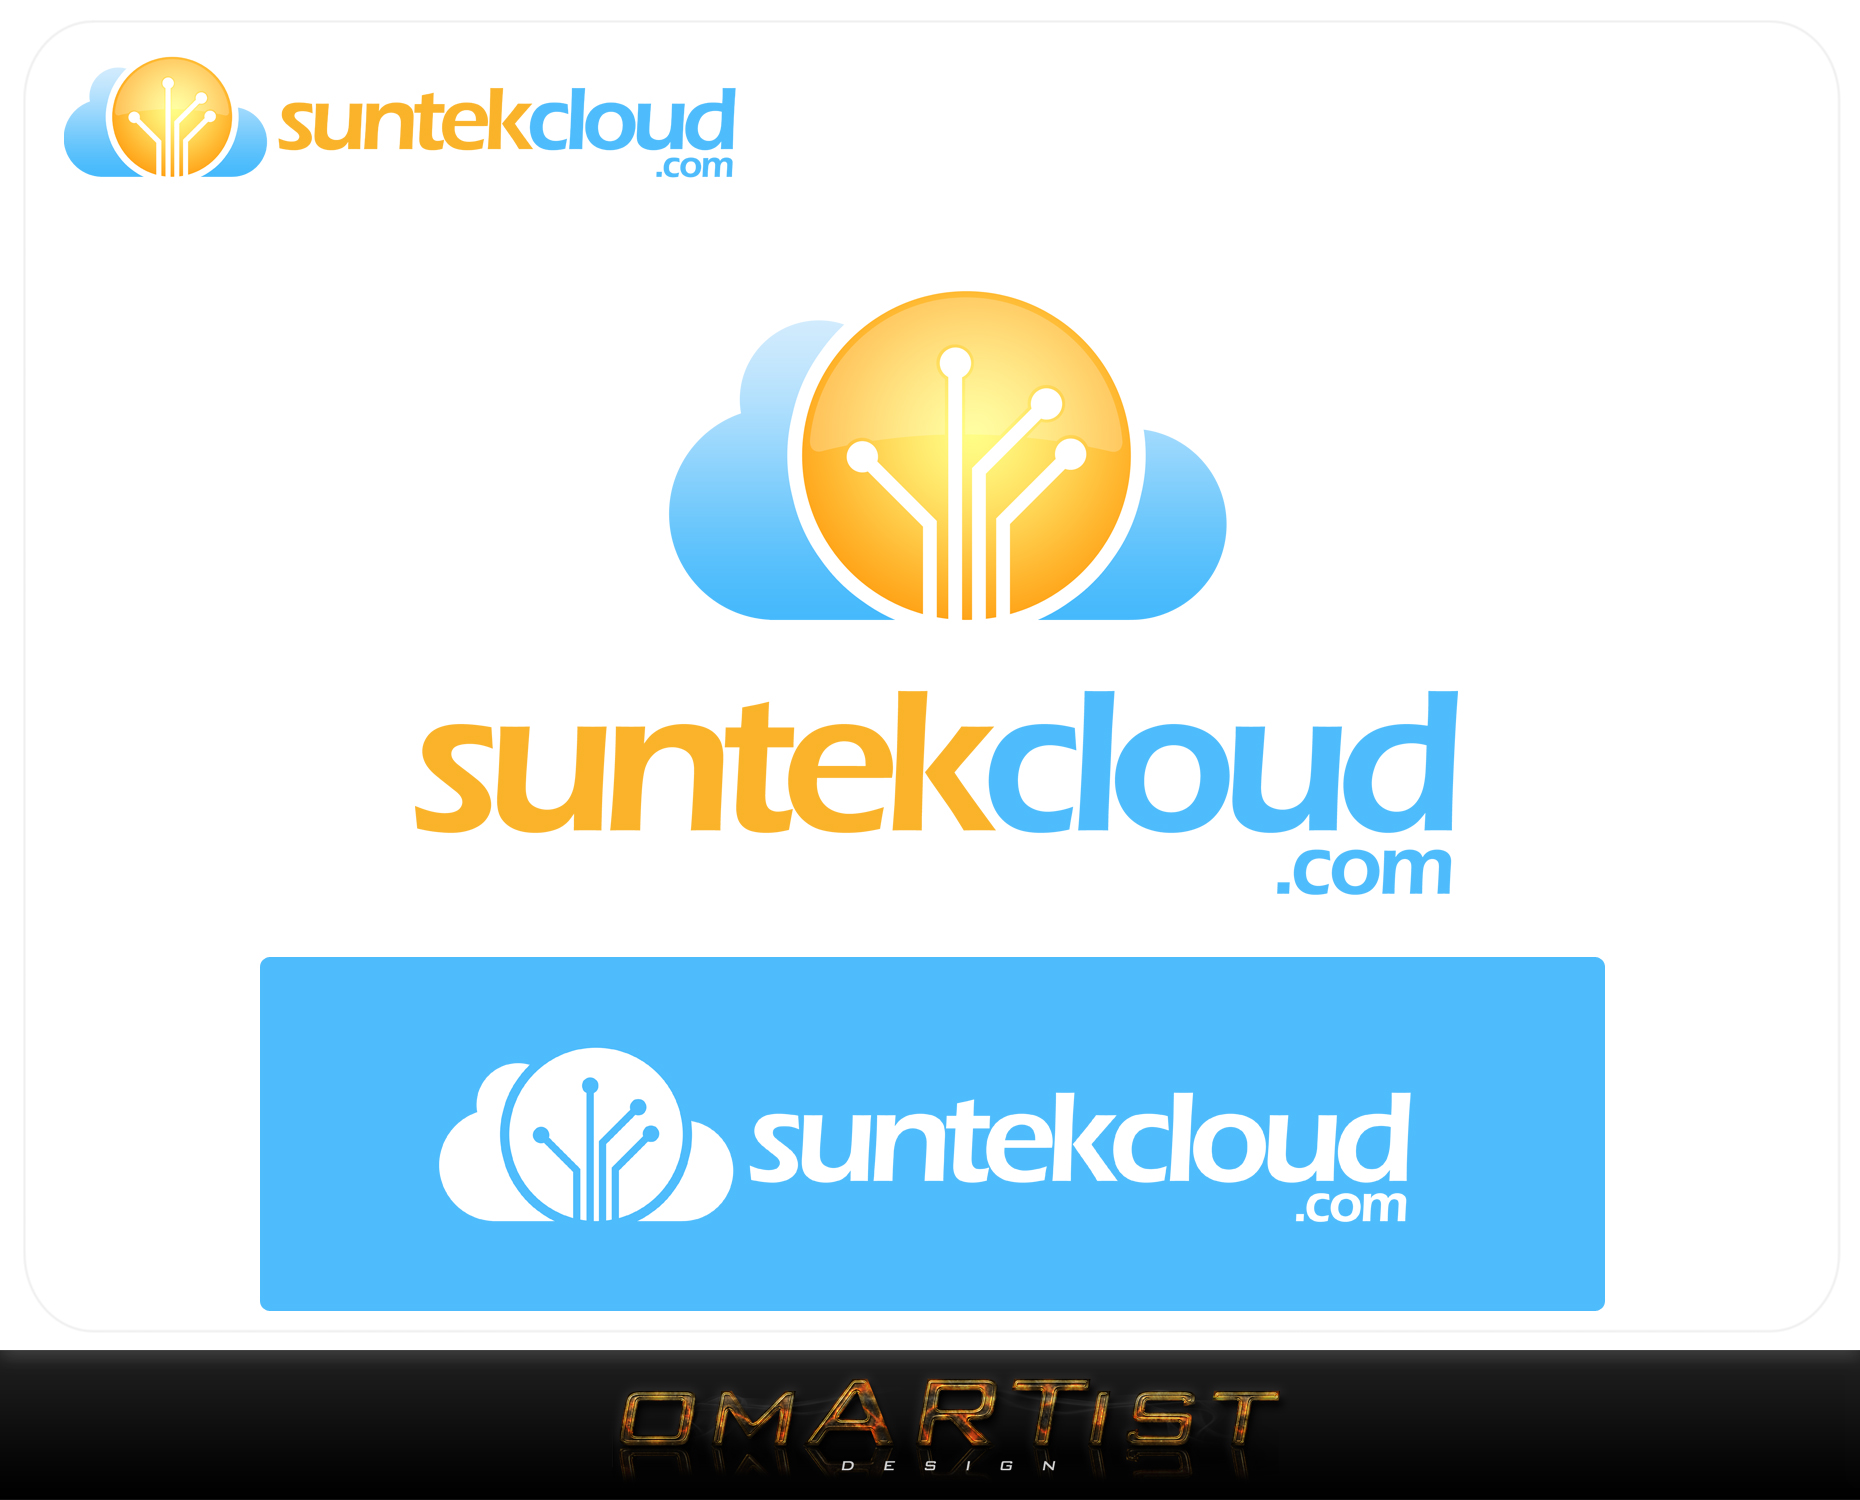 Logo Design by omARTist - Entry No. 113 in the Logo Design Contest Imaginative Logo Design for suntekcloud.com.